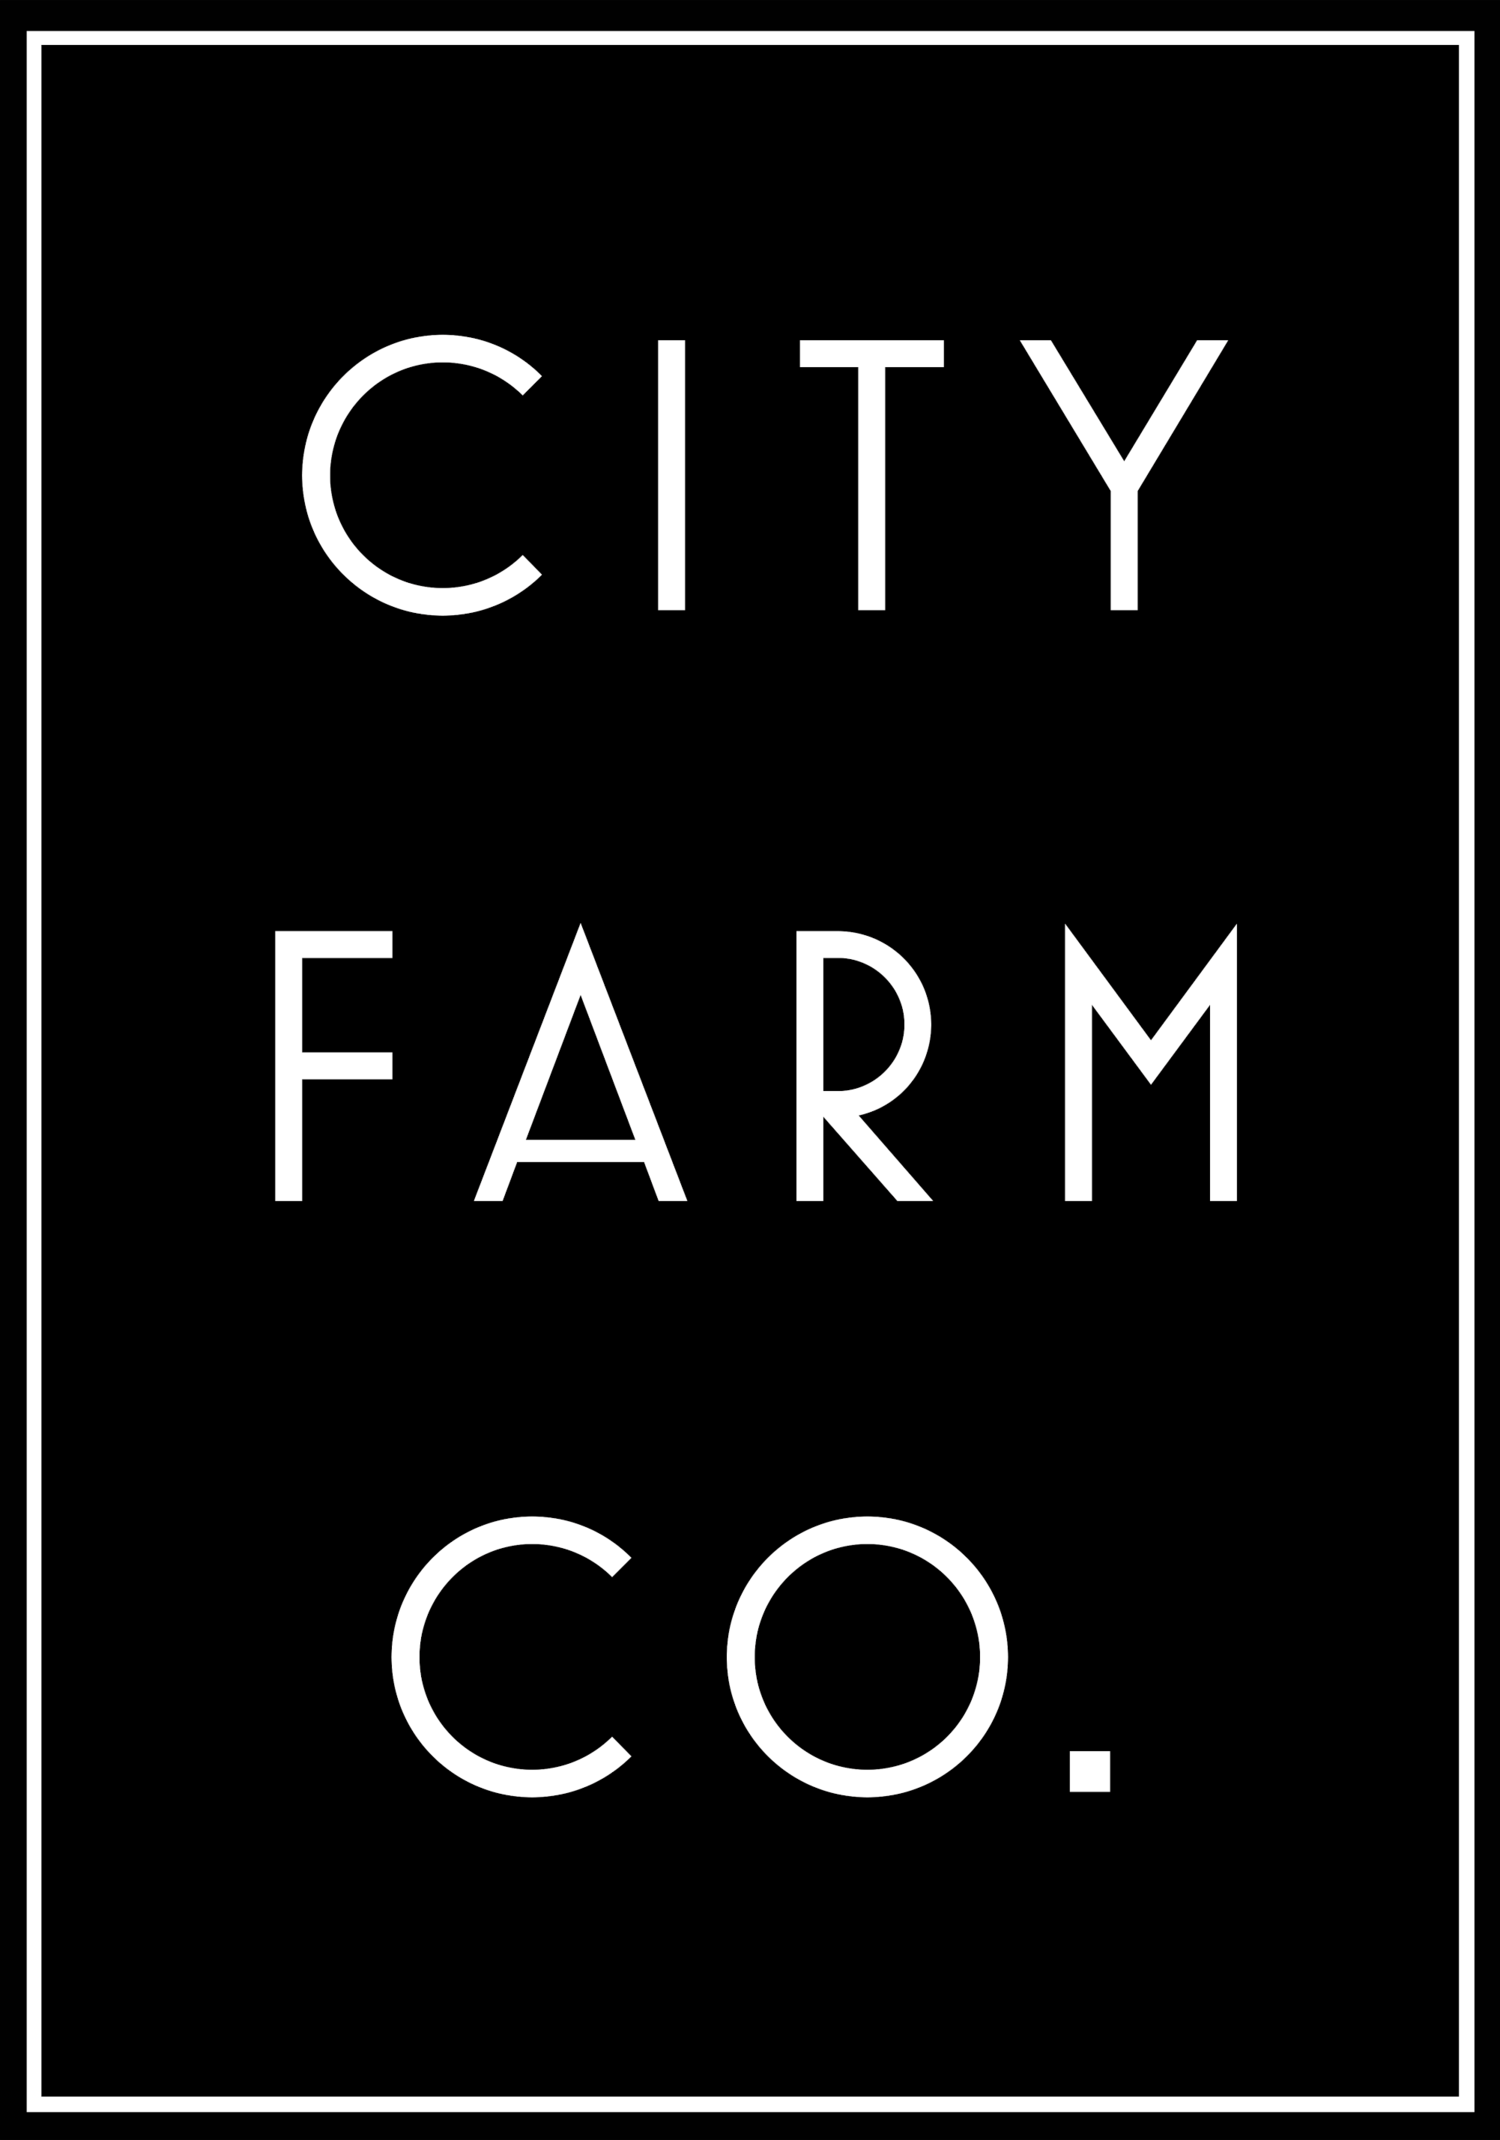 City Farm Company